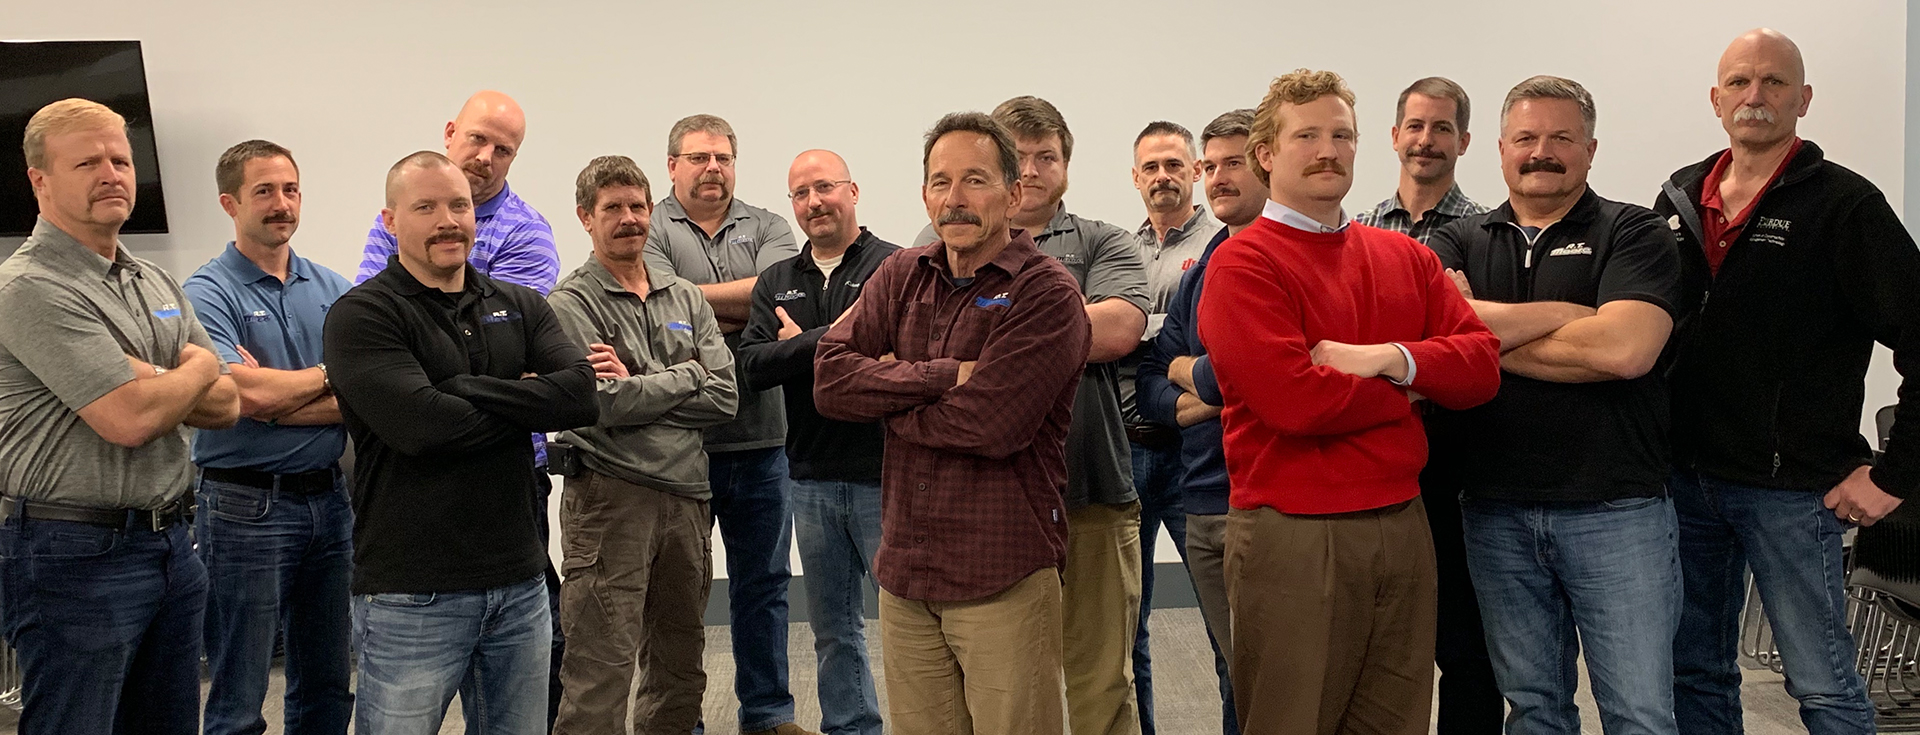 RT Moore Executive Team with Mustaches